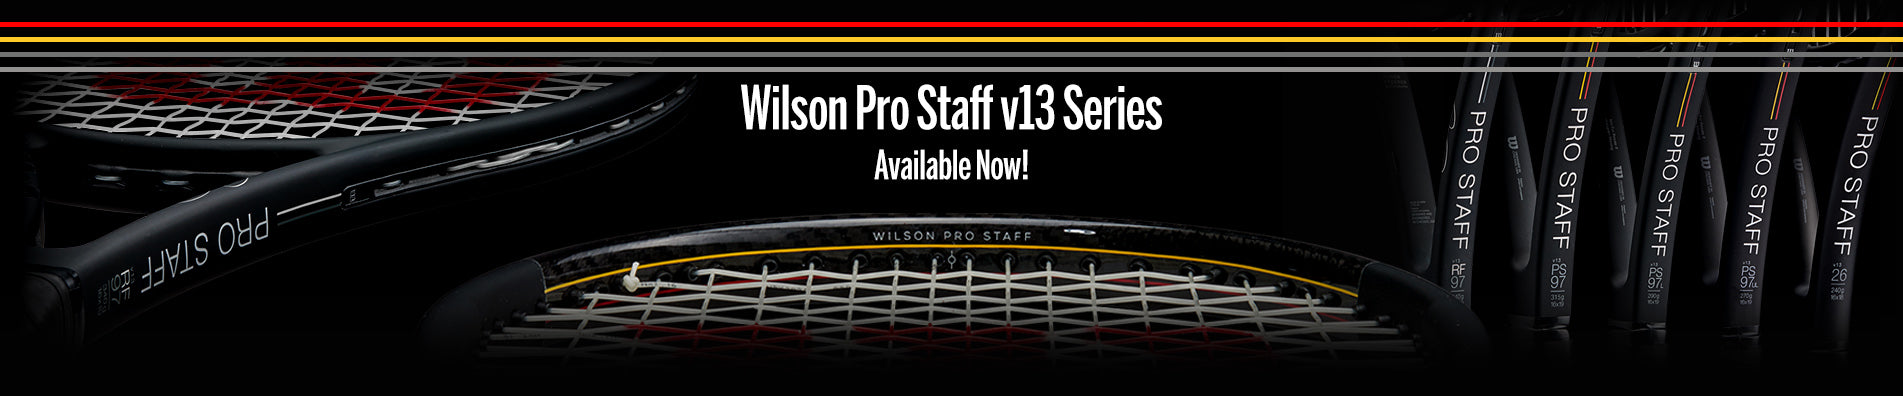 Wilson Pro Staff v13 Available now!